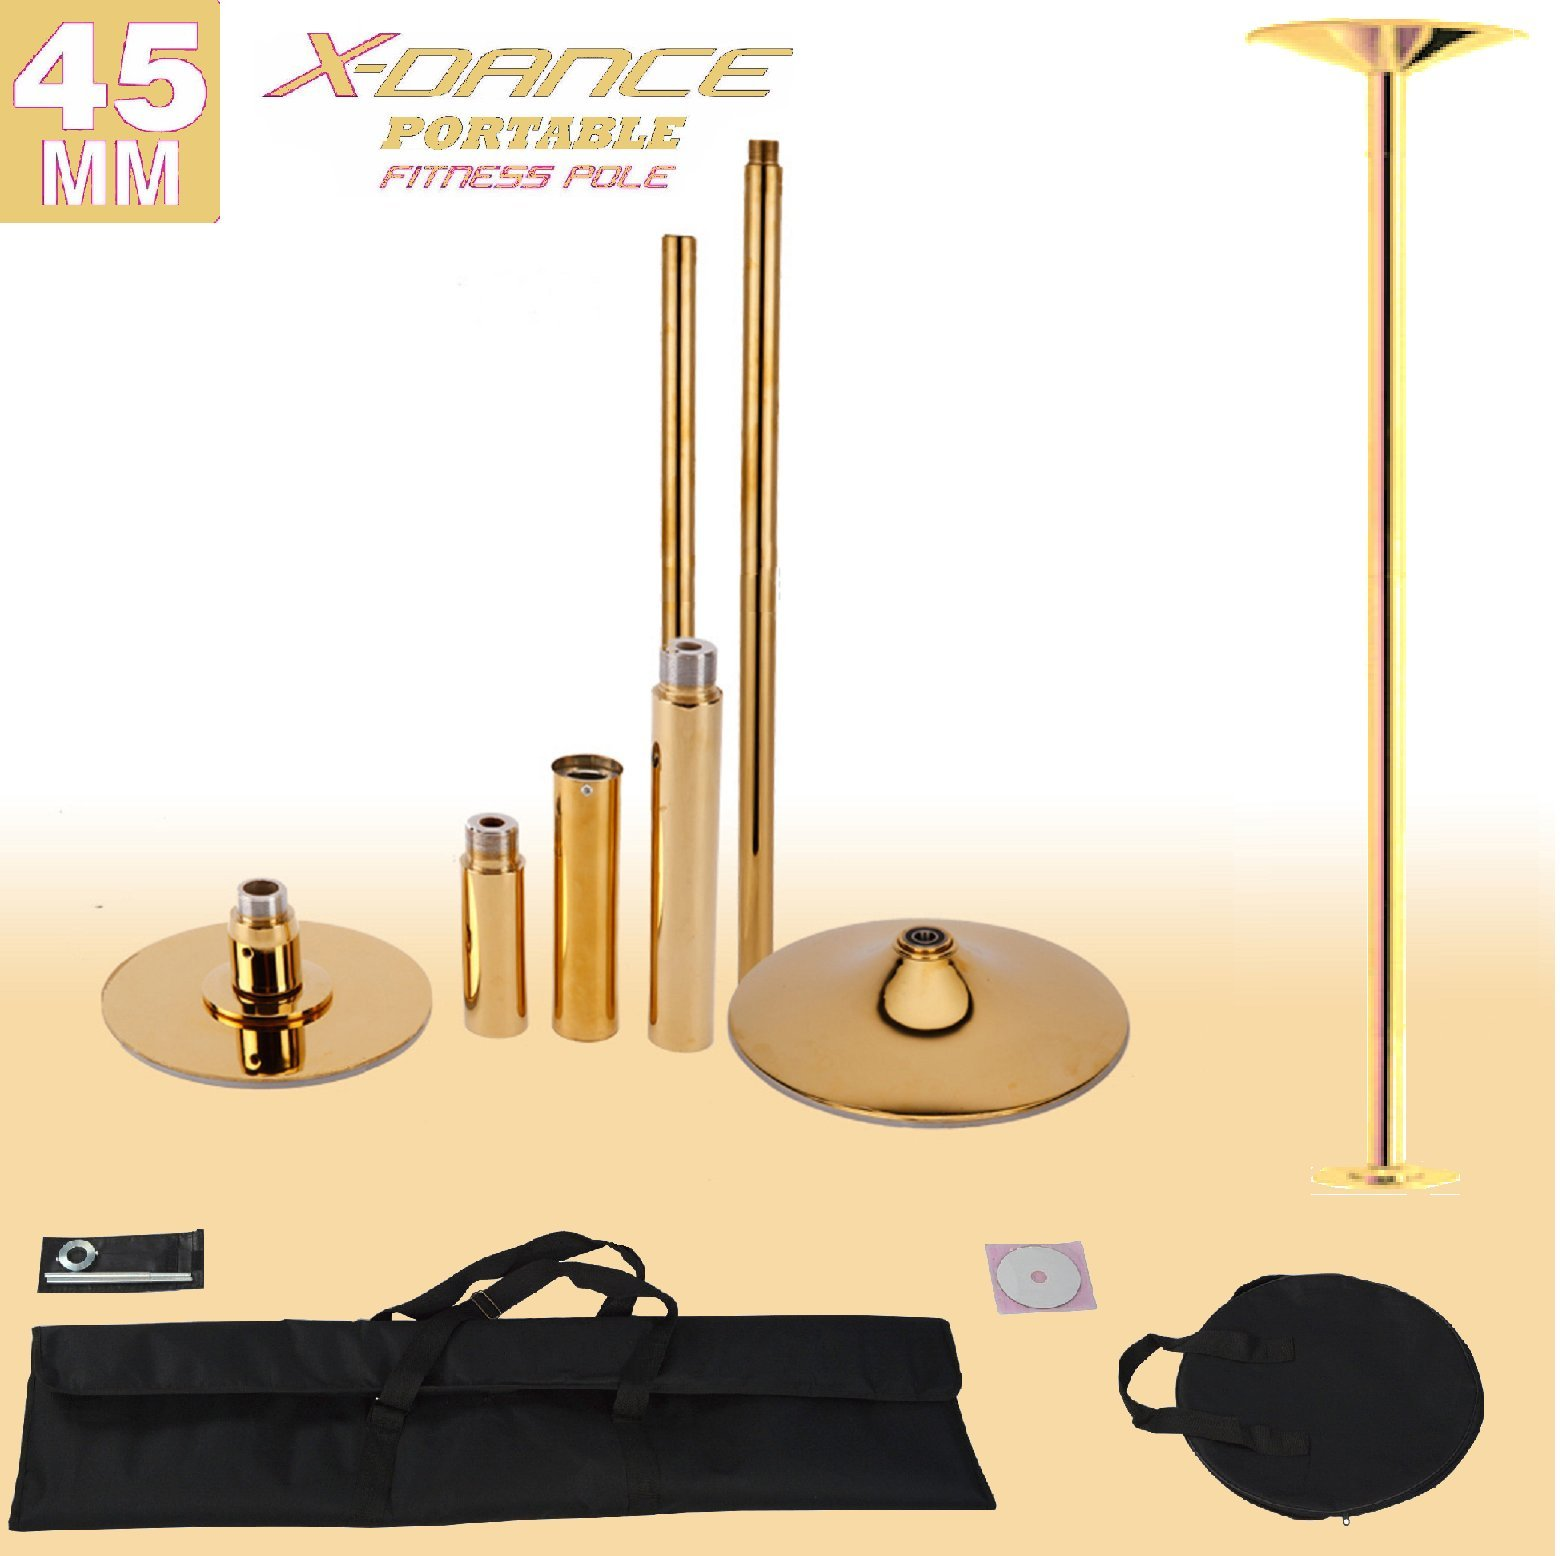 X-Dance (TM) 45 mm Professional Exotic Fitness Removable Pole Dance Fitness CHROME GOLD, 2 Black Portable Carry Bags Included, Dancing Spinning Pole …